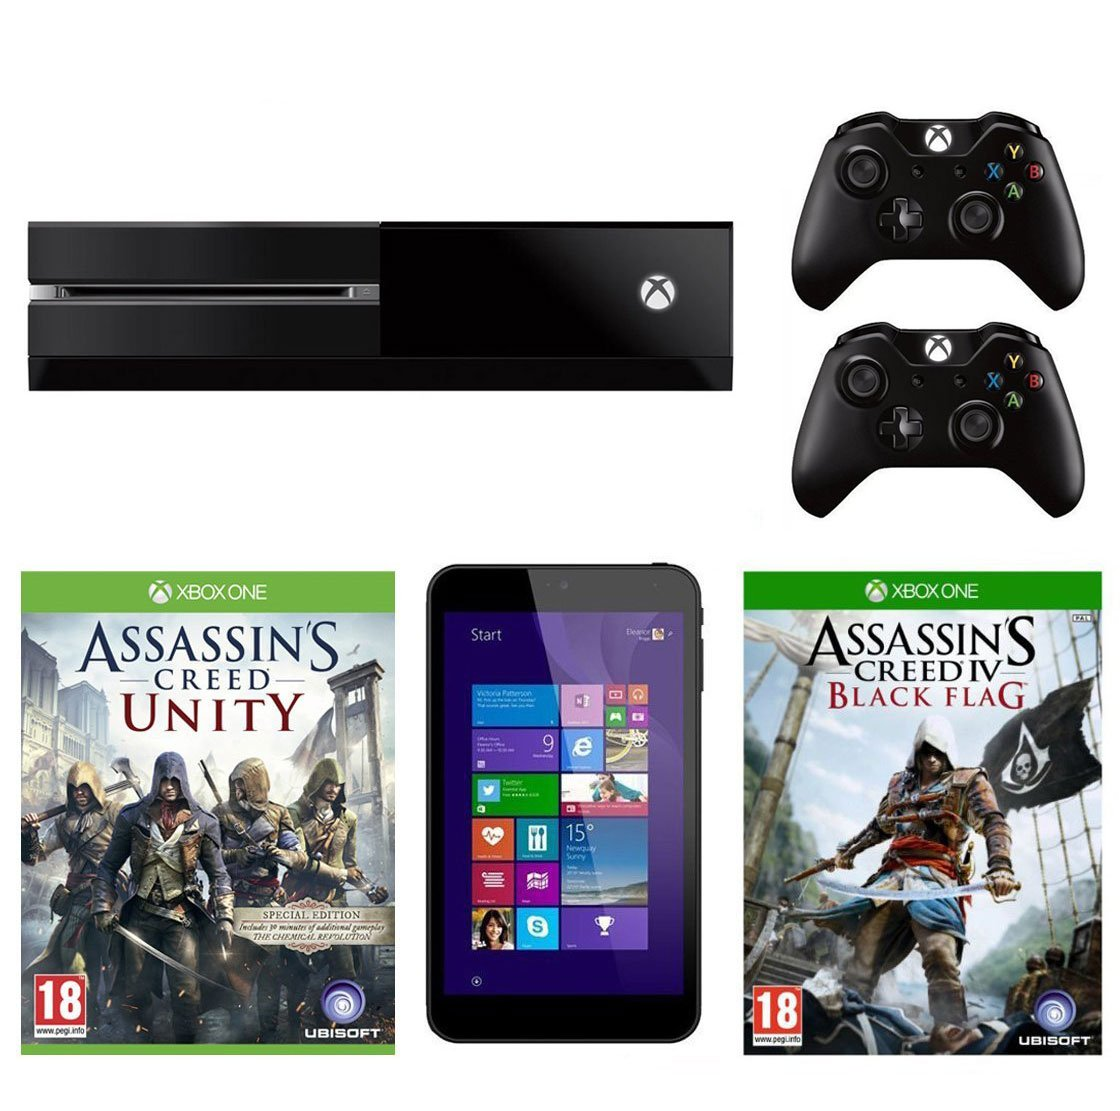 Xbox One Console With Assassins Creed Unity With Linx 7-Inch ...